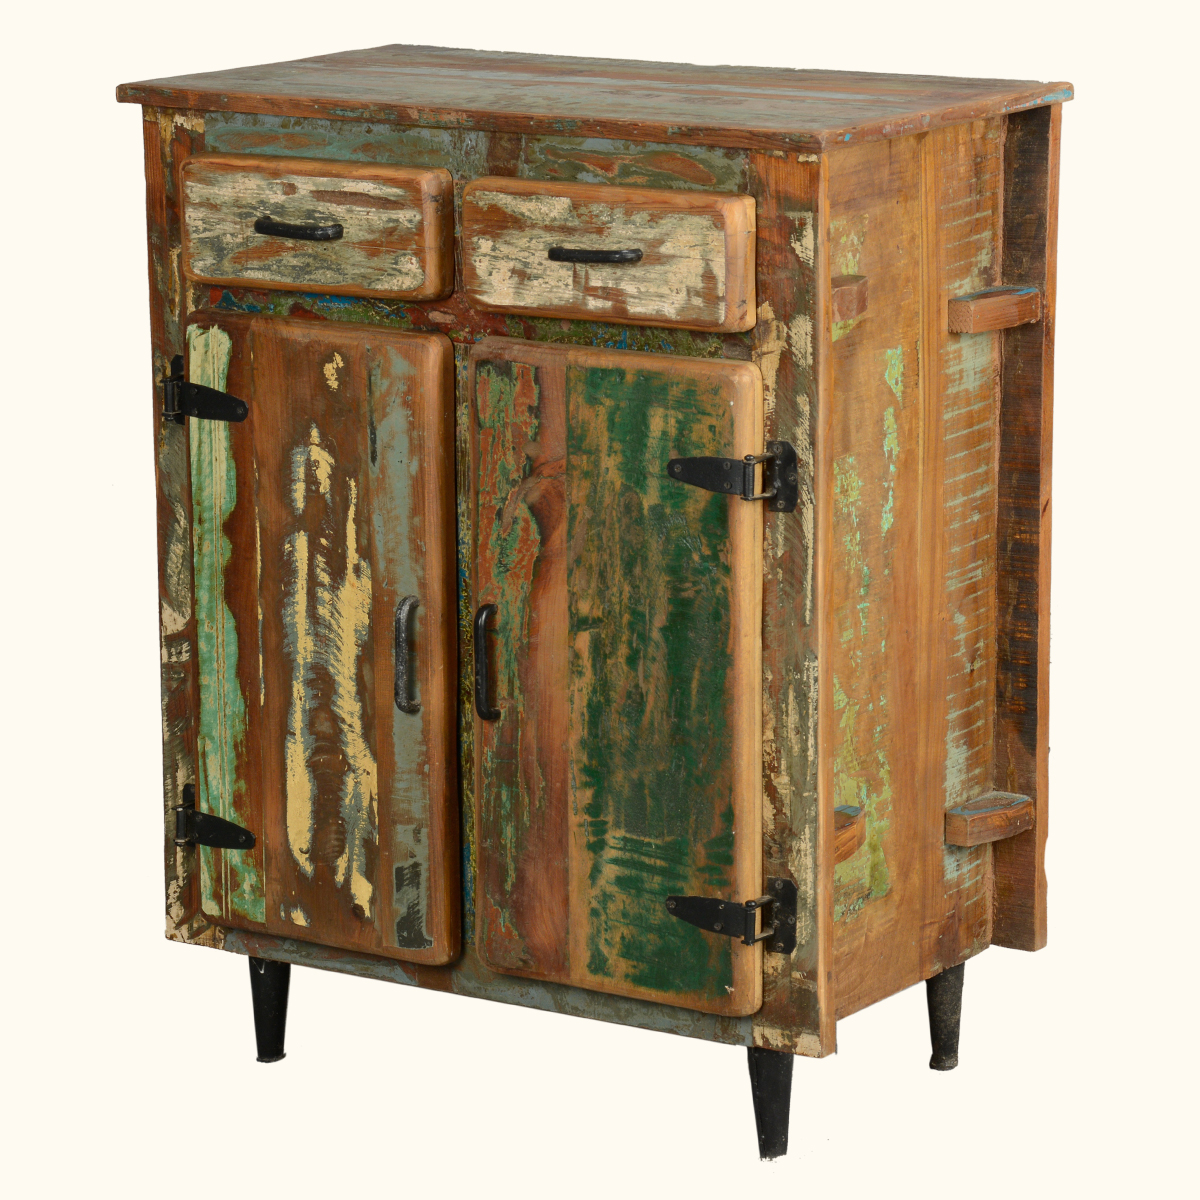 Reclaimed Wood Rustic Kitchen Utility Storage Cabinet Buffet Table Sideboard